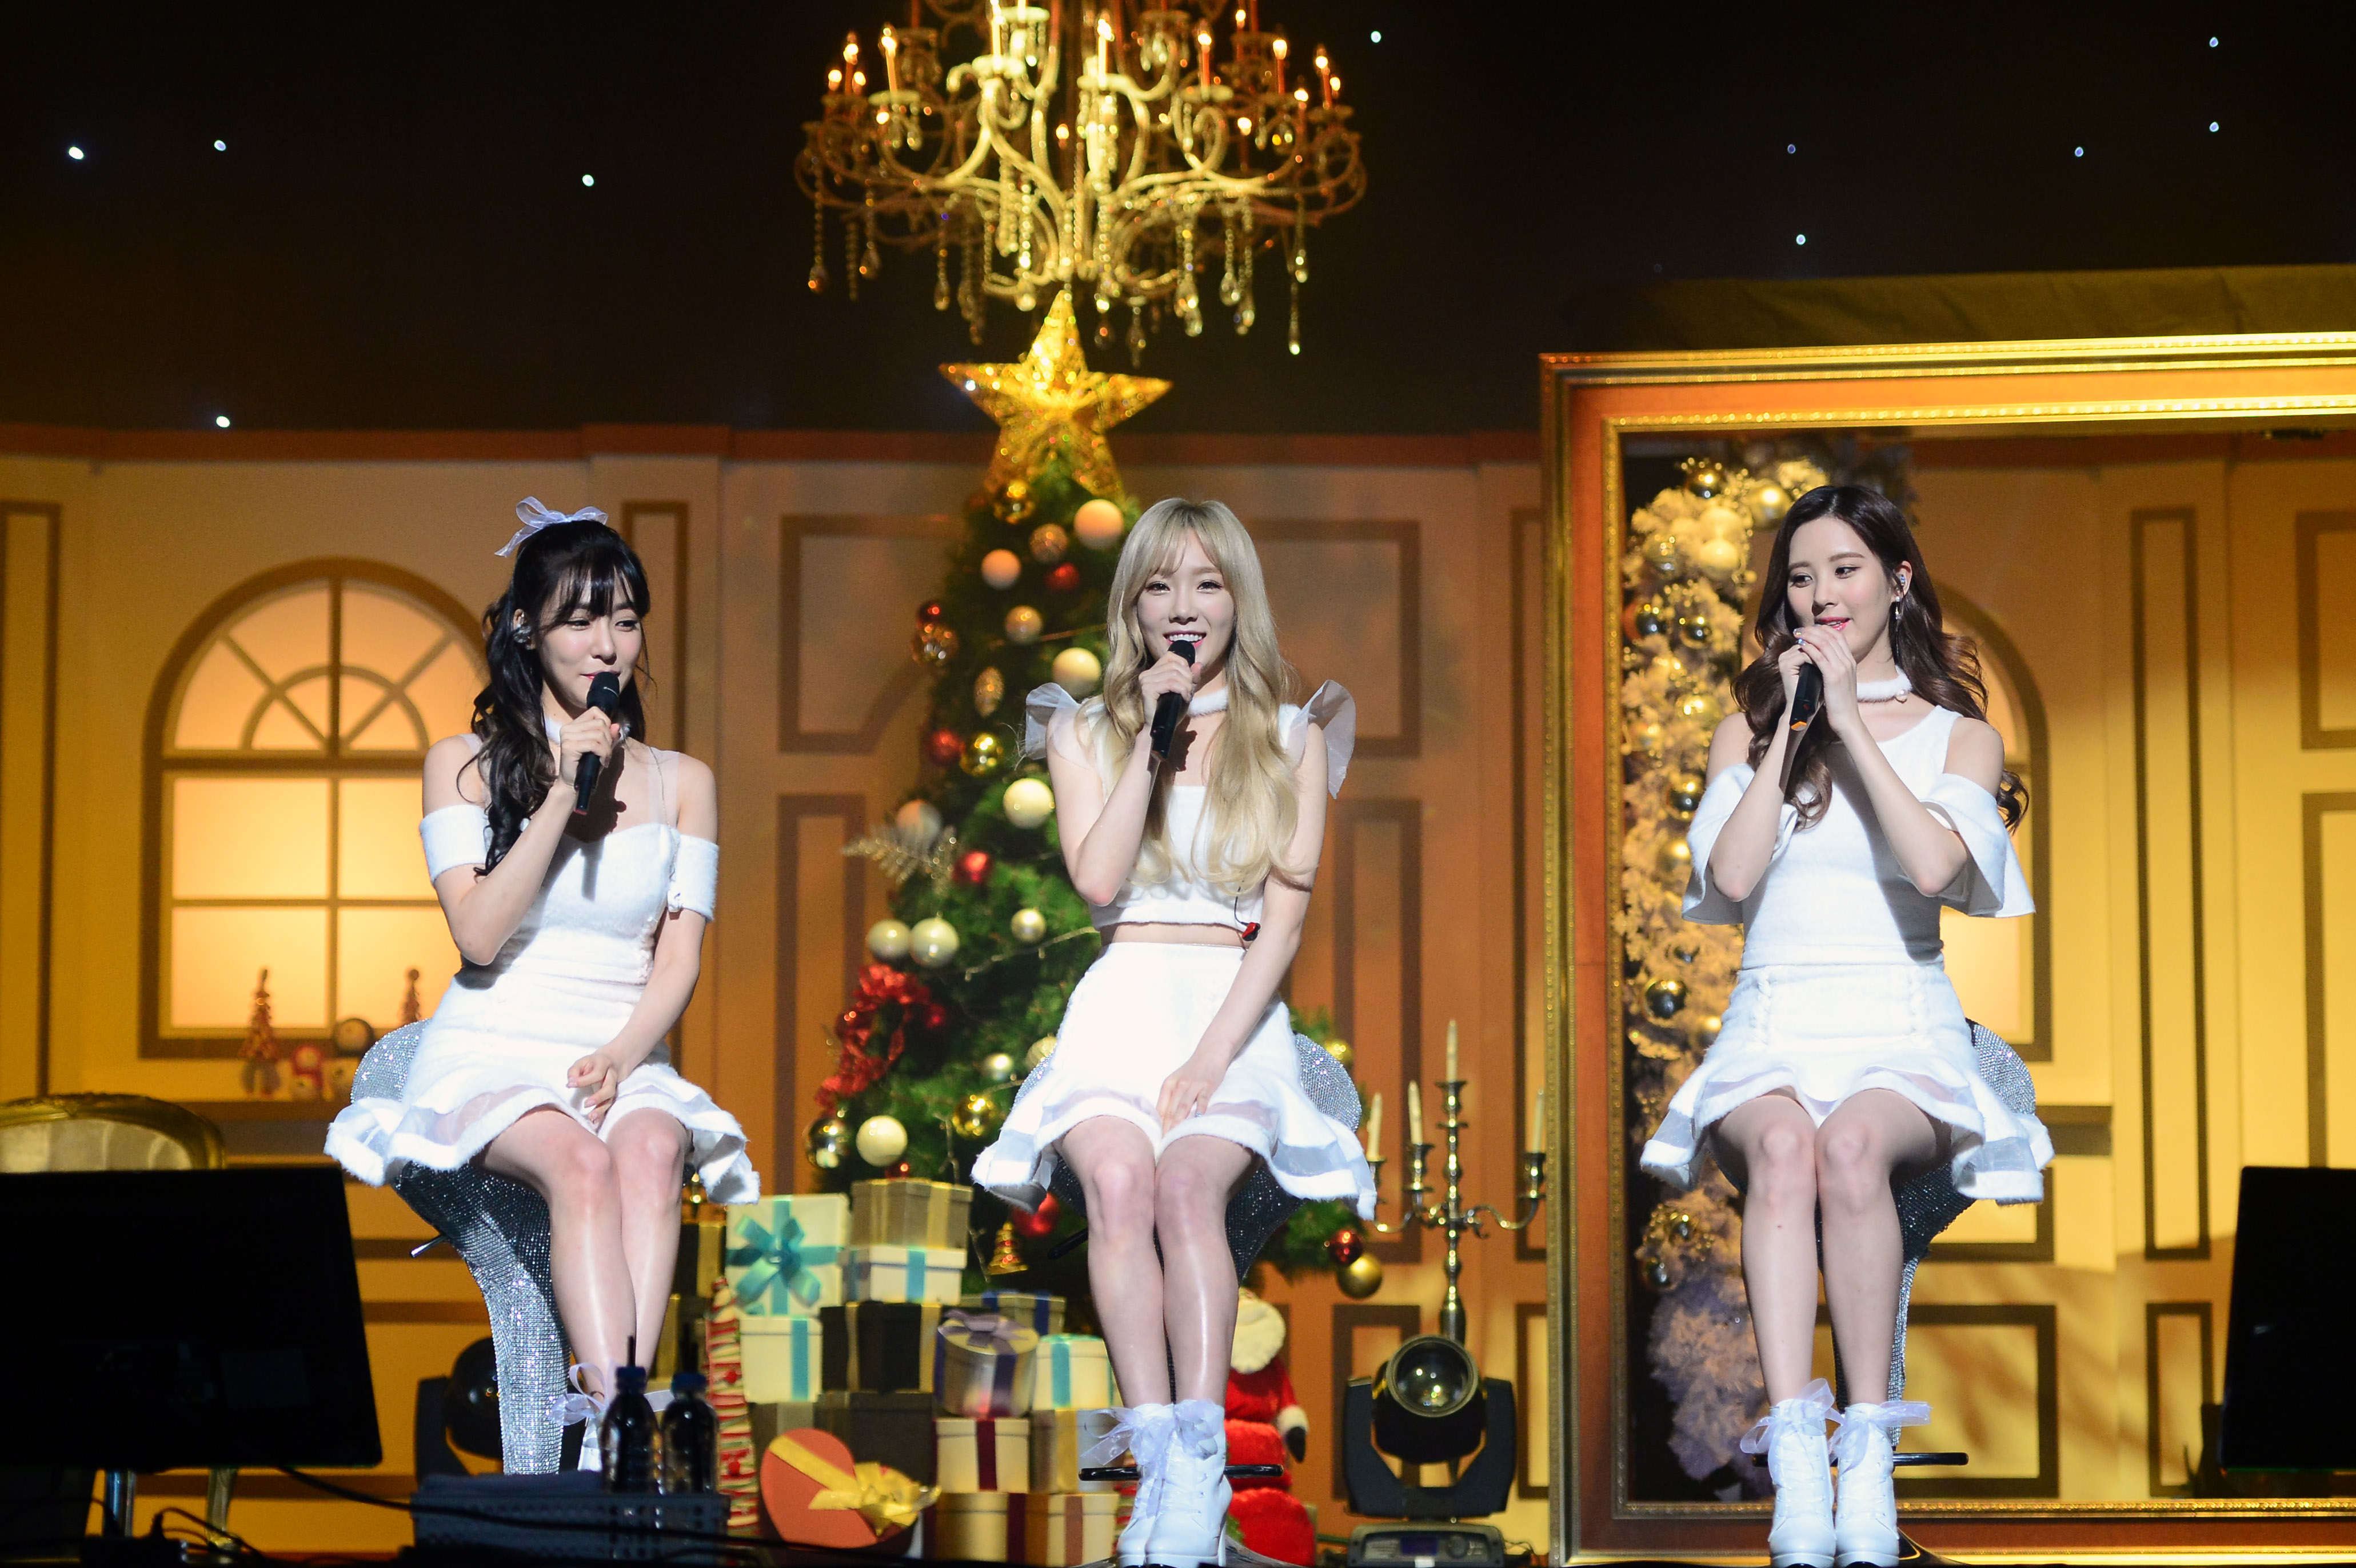 Taetiseo Welcome Winter With Dear Santa Theasian Ajr dear winter official video. theasian